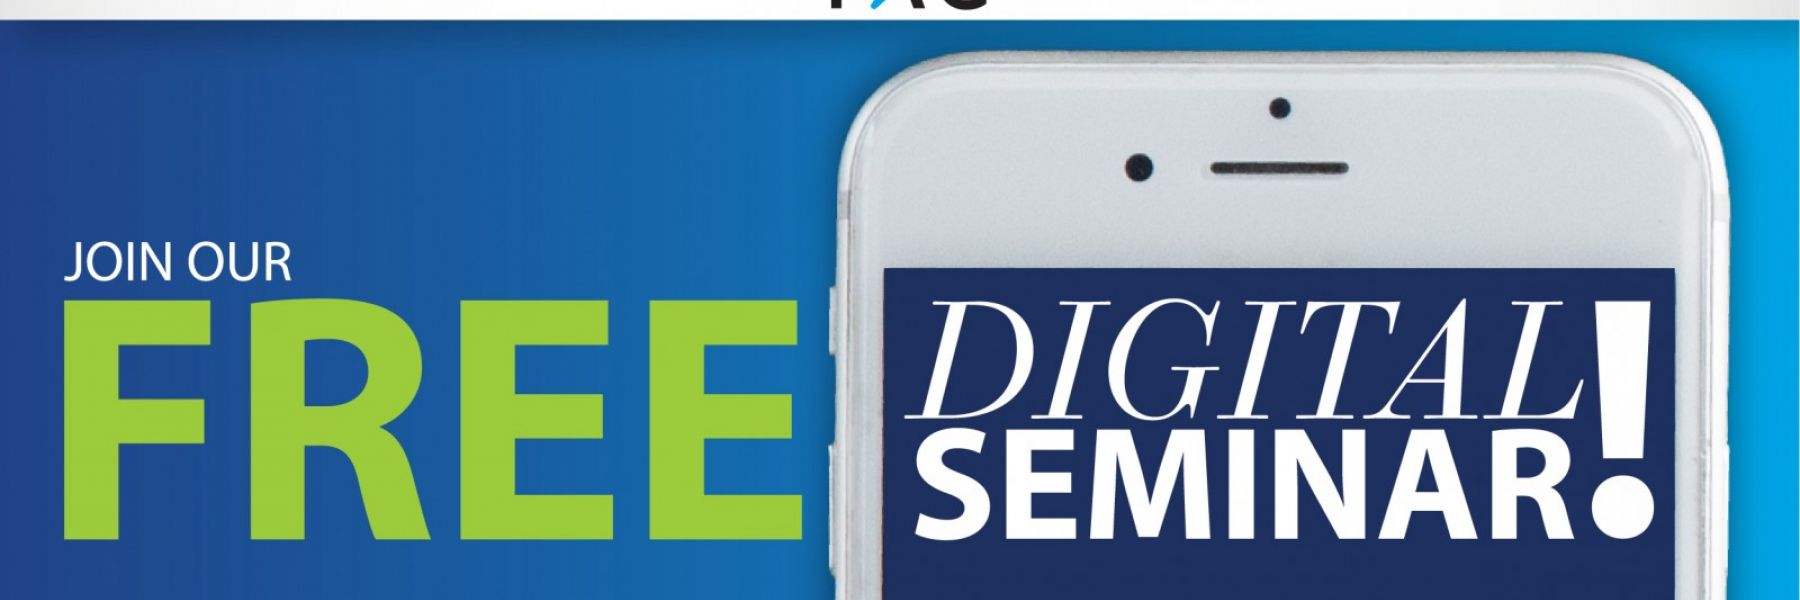 graphic of a cell phone with the words Free Digital Seminar on top